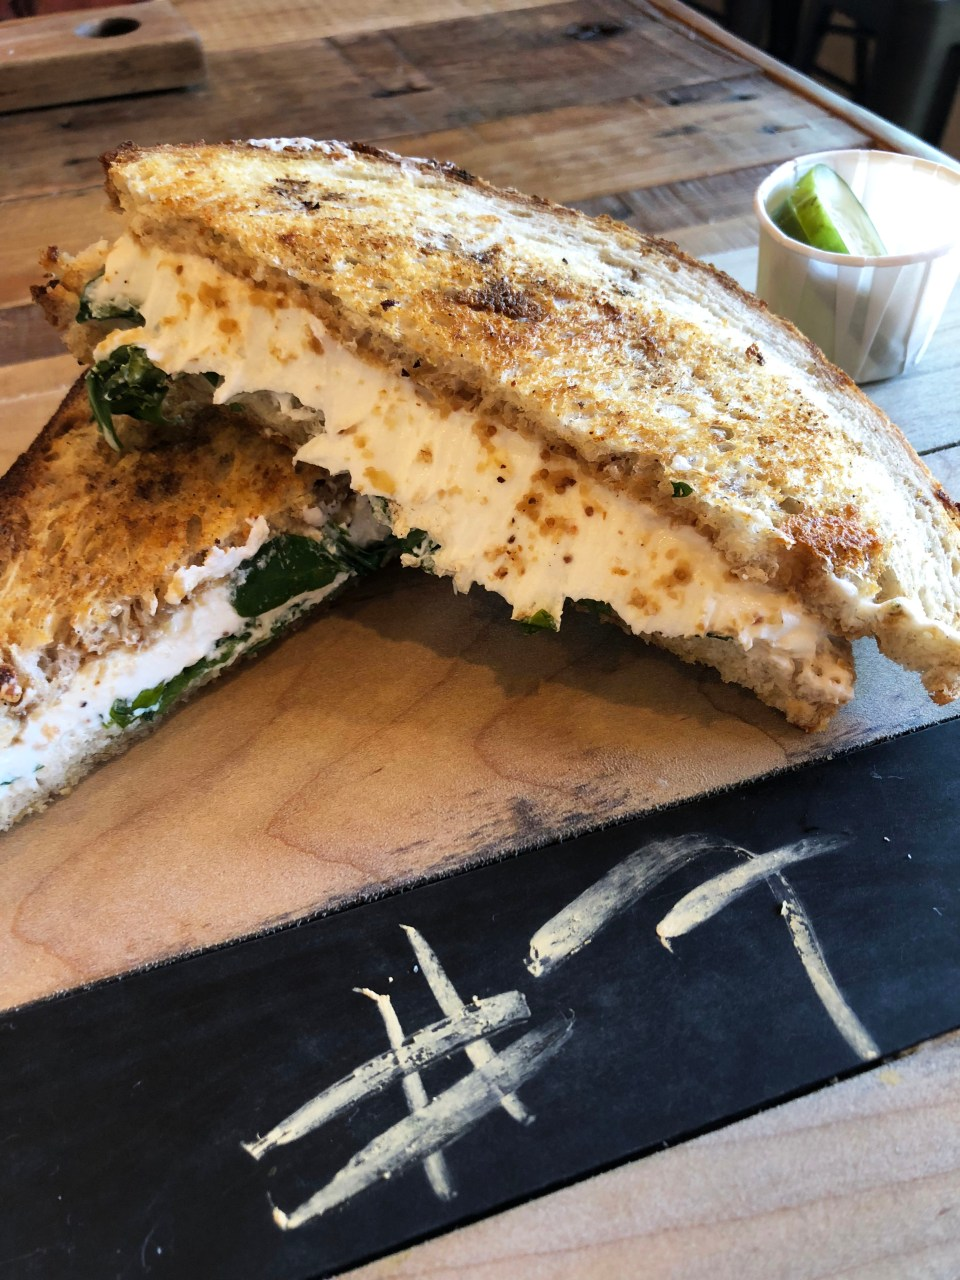 Fromage Grille - Chevre 1